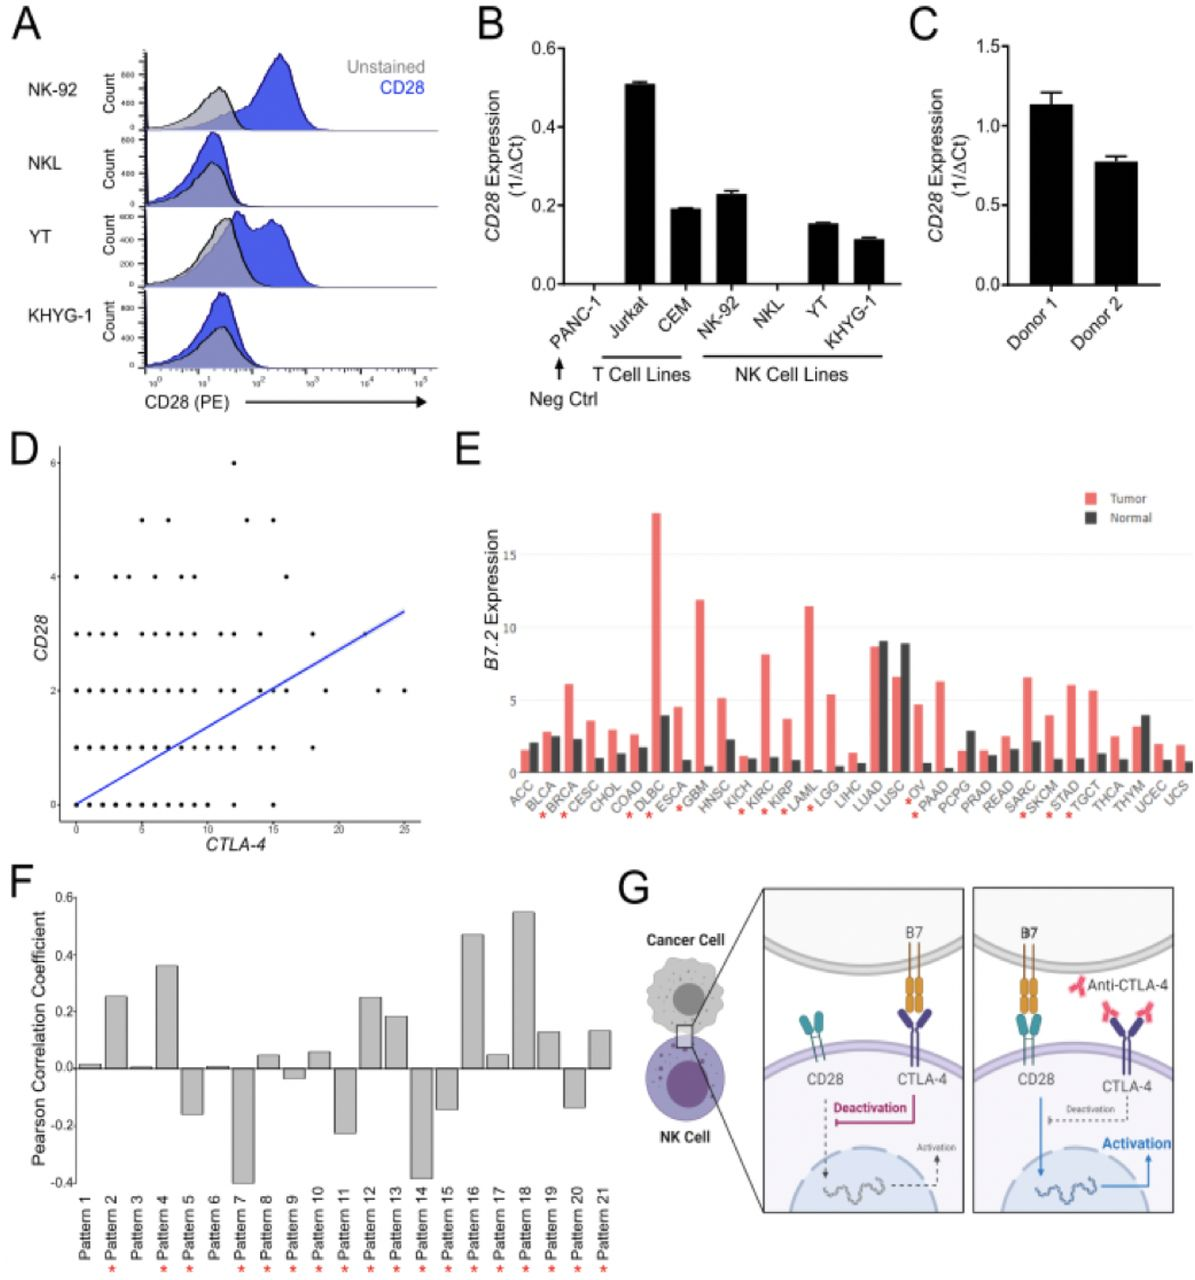 CD28 and CTLA-4 are coexpressed in circulating and tumoral NK cells. A. Flow cytometry for surface expression of CD28 in NK cell lines (NK-92, NKL, YT, KHYG-1). B. qRT-PCR analysis of CD28 expression in a CD28 null line (PANC-1), T cell lines (Jurkat, CEM), NK cell lines (NK-92, NKL, YT, KHYG-1). C. qRT-PCR demonstrating CD28 expression in CD56+ selected ex vivo unstimulated NK cells derived from PBMCs from healthy human donors. D. scRNAseq data demonstrating positive correlation (R 2 = 0.33, p = 0) between CD28 gene expression and CTLA-4 gene expression in human natural killer cells. E. B7.2 (CD86) mRNA expression levels in primary tumors versus paired normal (TCGA). Red asterisk (*) indicates cancer types with significantly overexpressed CD86 in tumor compared to normal tissue. F. Pan-cancer TCGA data demonstrating a negative correlation between pattern 7 weight and B7.2 expression. Significant correlation coefficients are indicated by a red asterisk (*). G. Schematic demonstrating proposed mechanism by which anti-CTLA-4 antibodies may enhance NK cell-mediated tumor clearance.